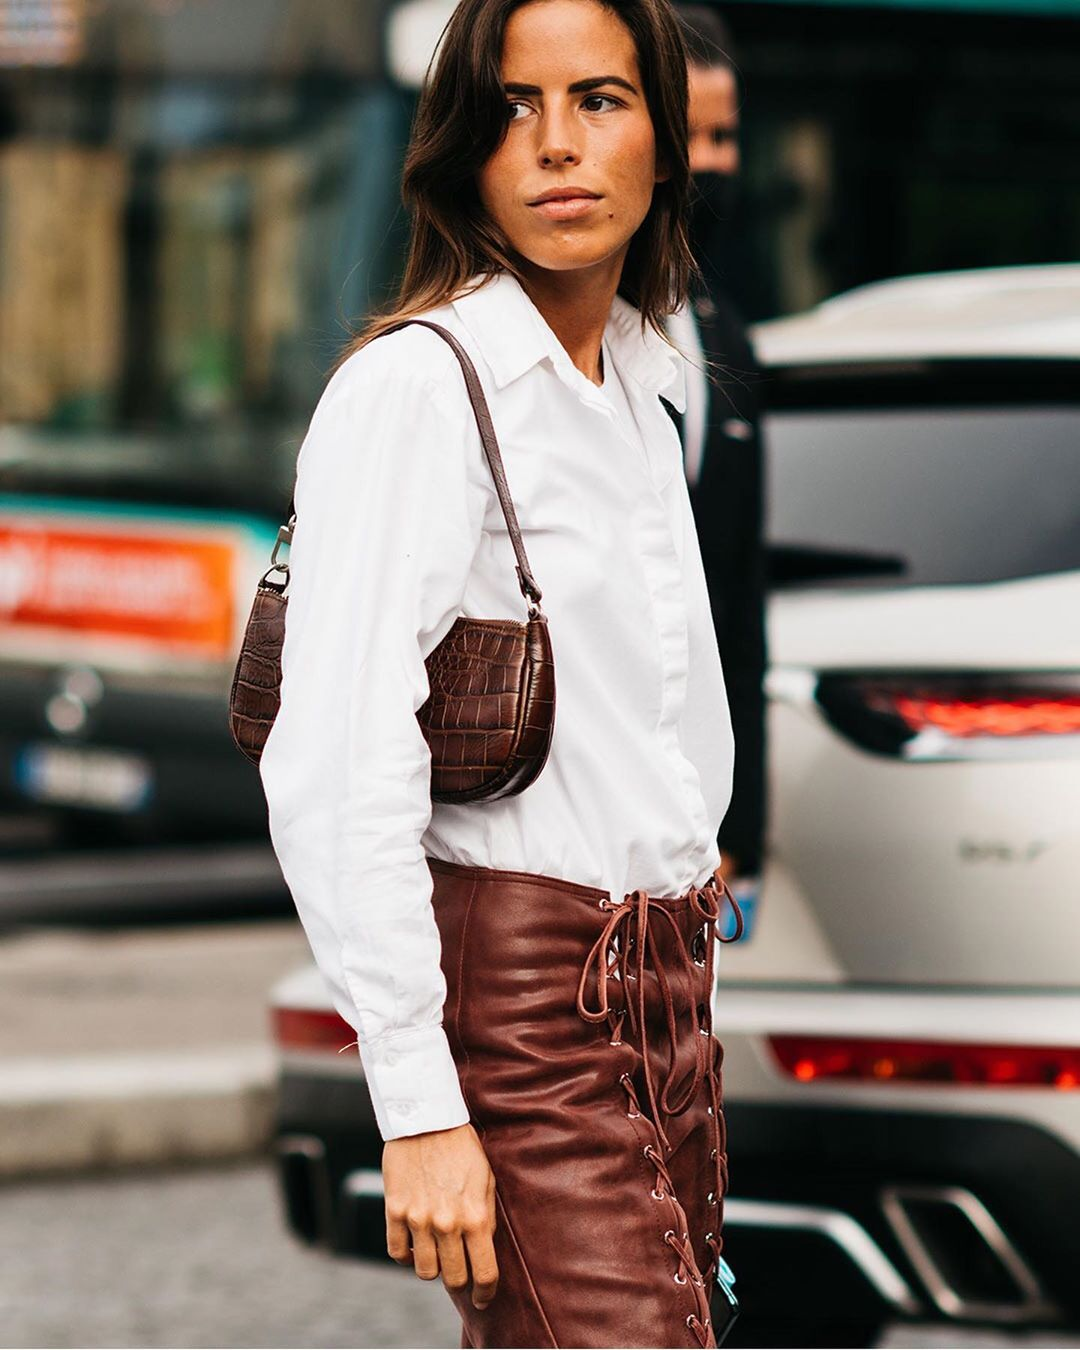 nina-urgell-by-far-rachel-croc-effect-leather-bag-paris-street-style